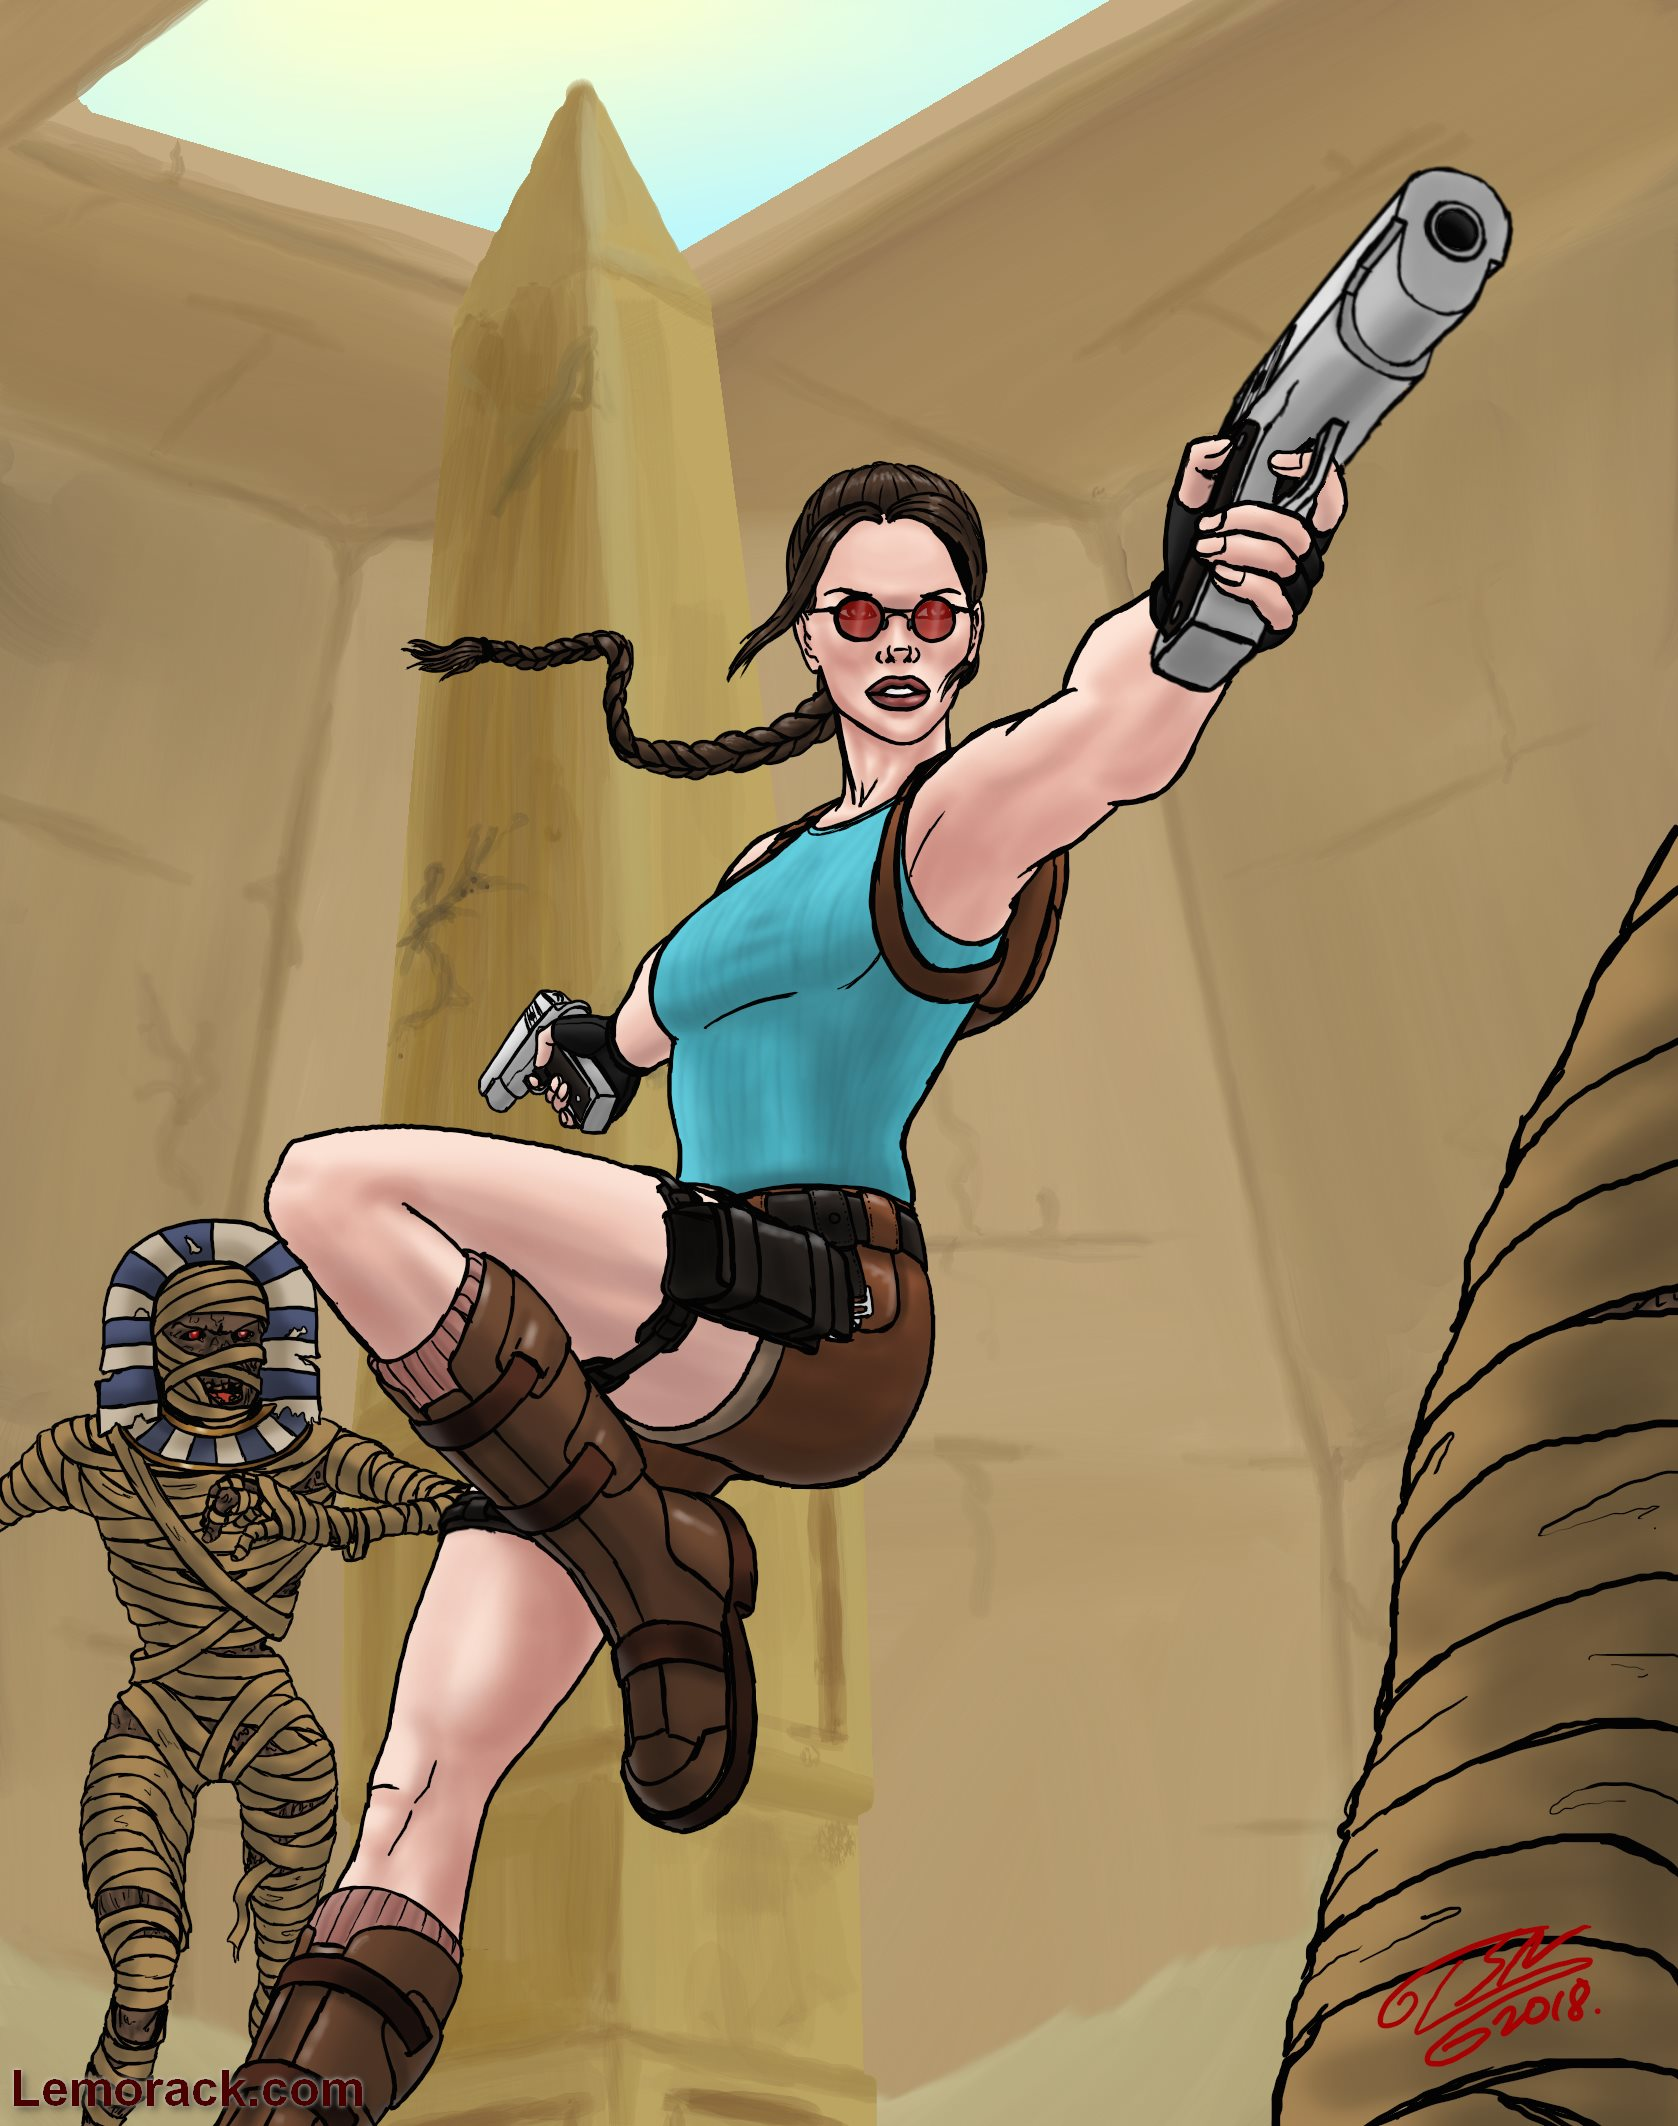 laracroft_egypt